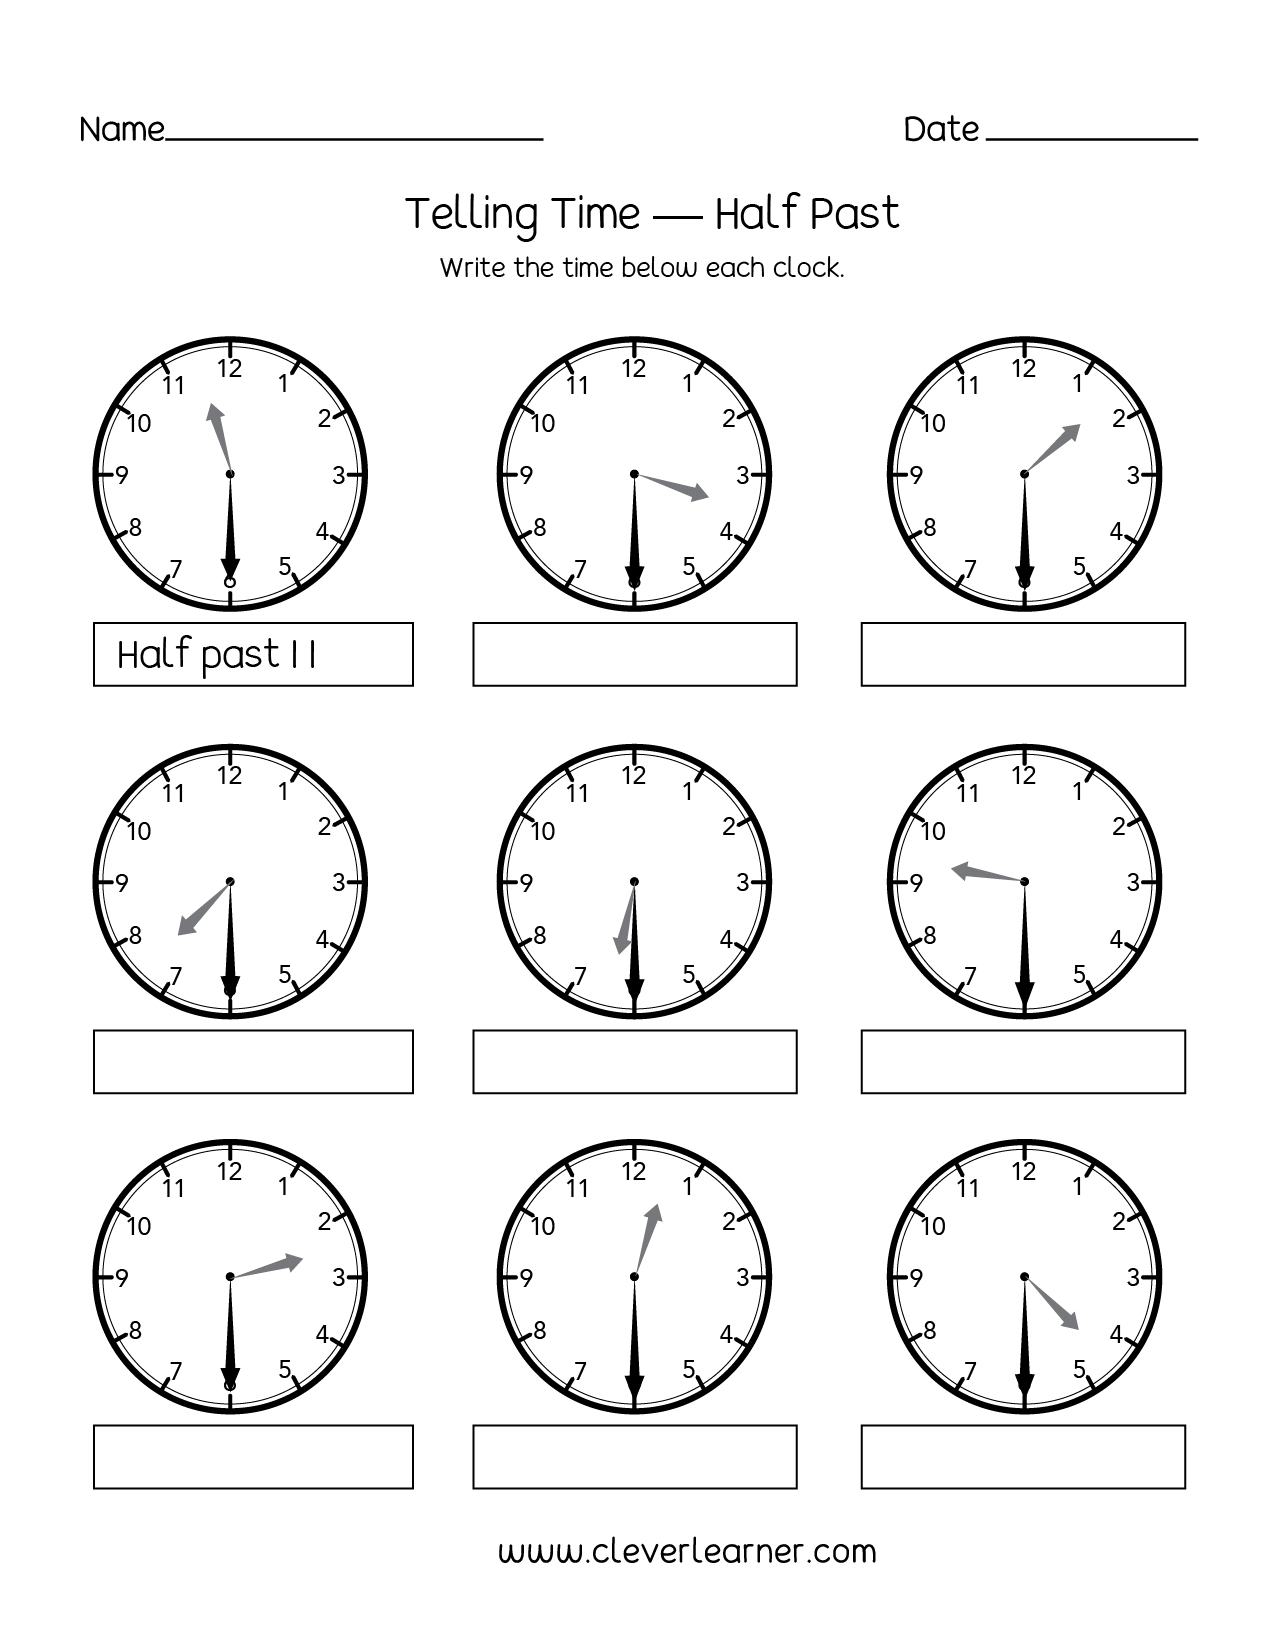 Free Printable Telling Time Worksheets For 1st Grade